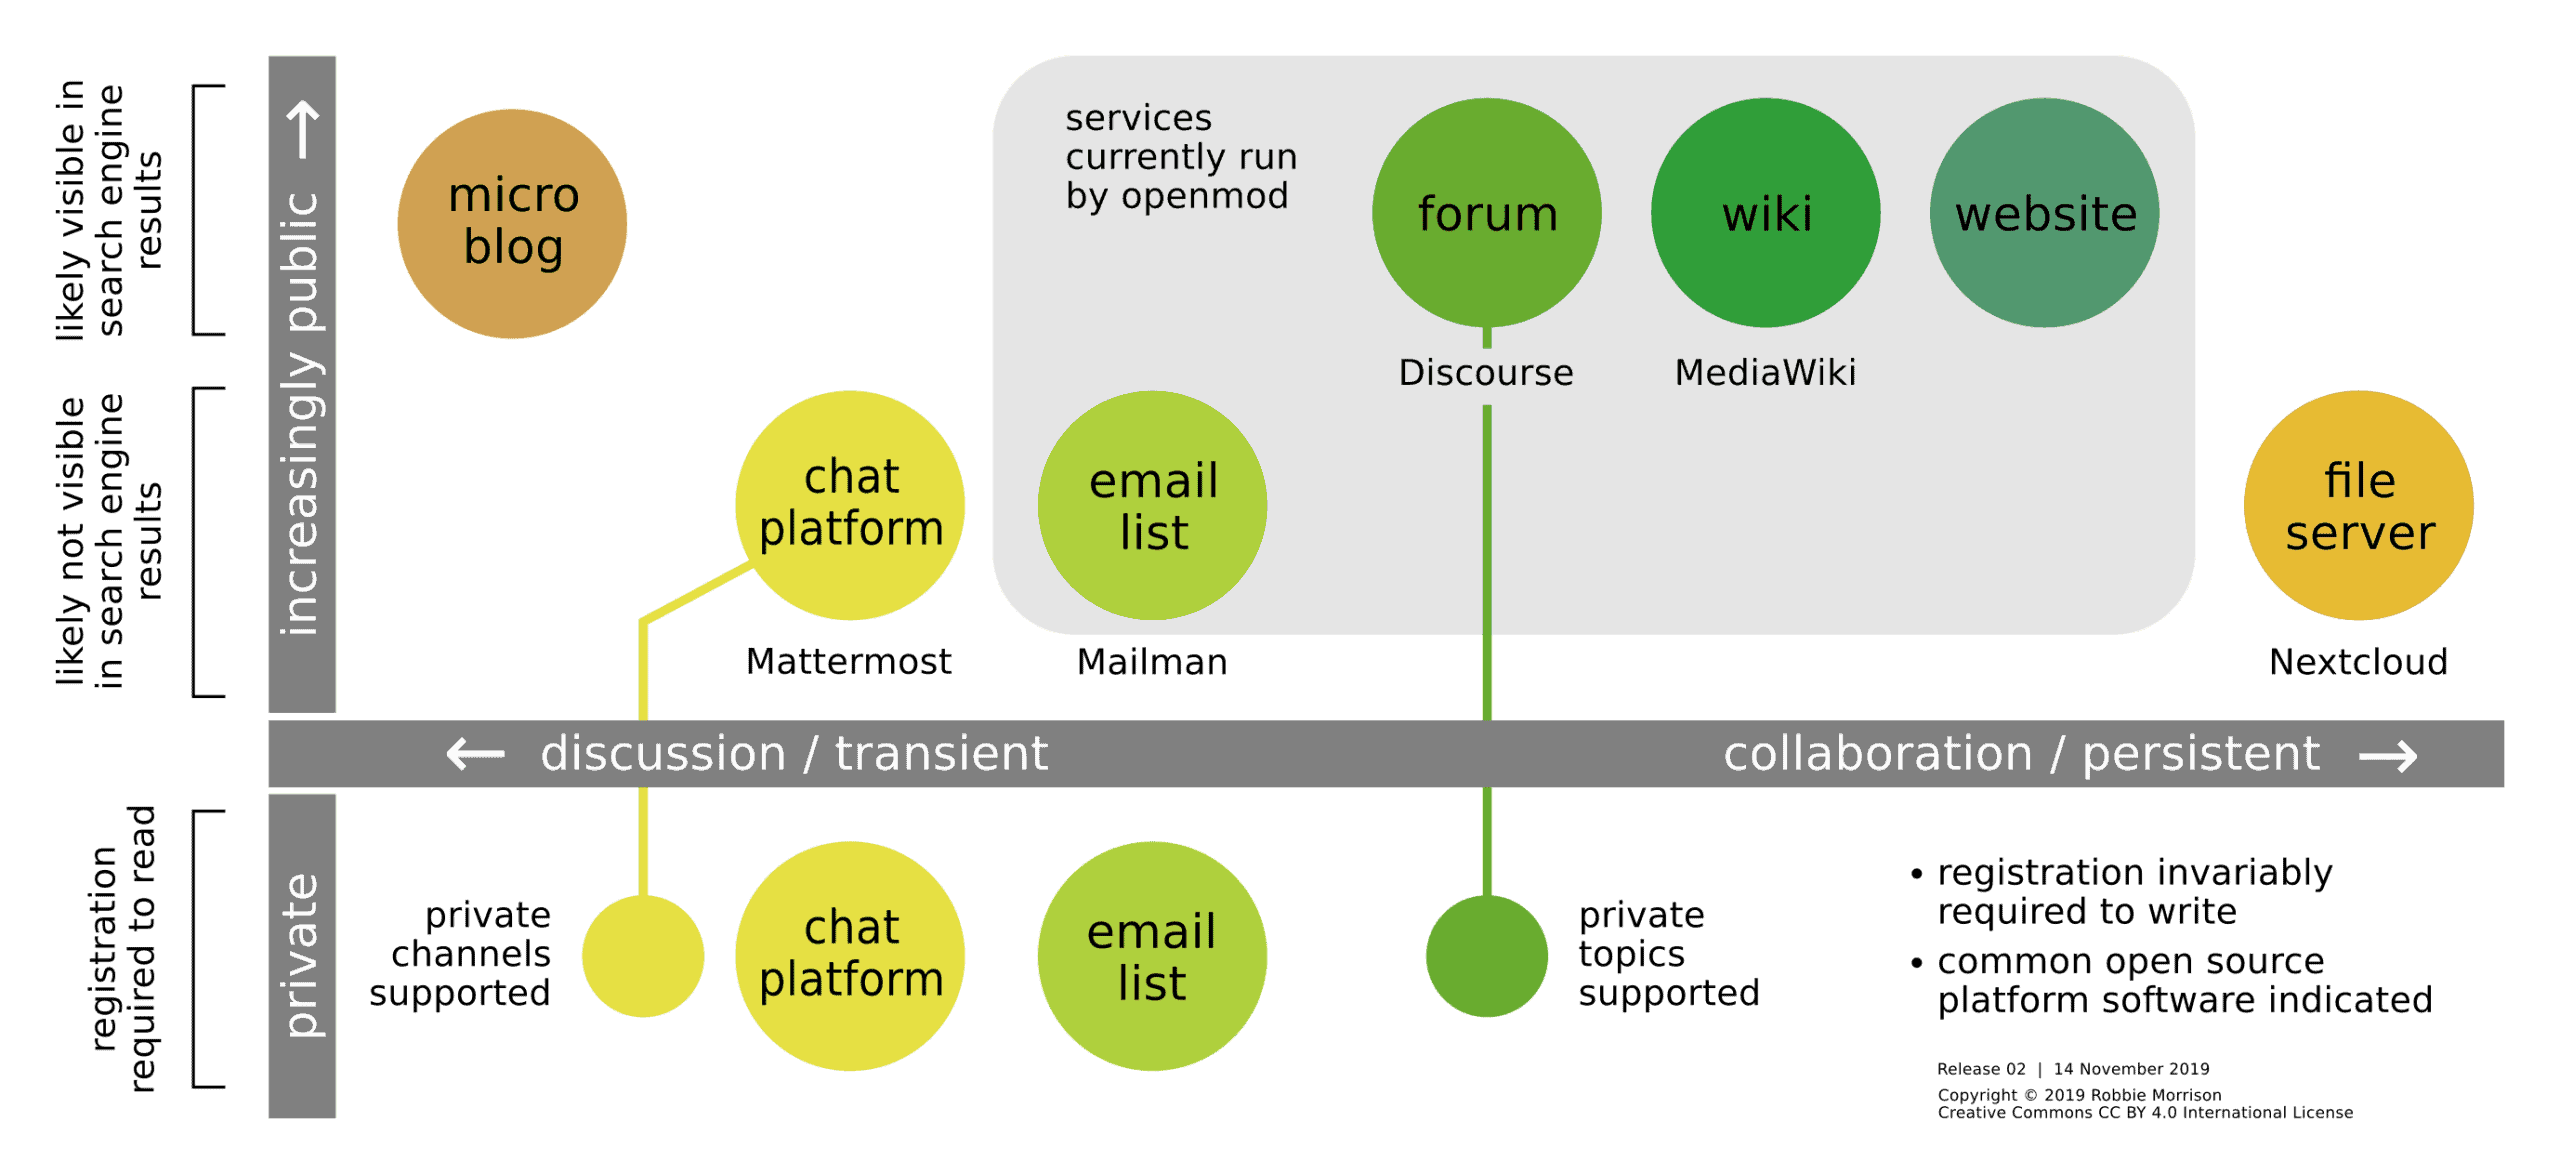 Asynchronous communication channels